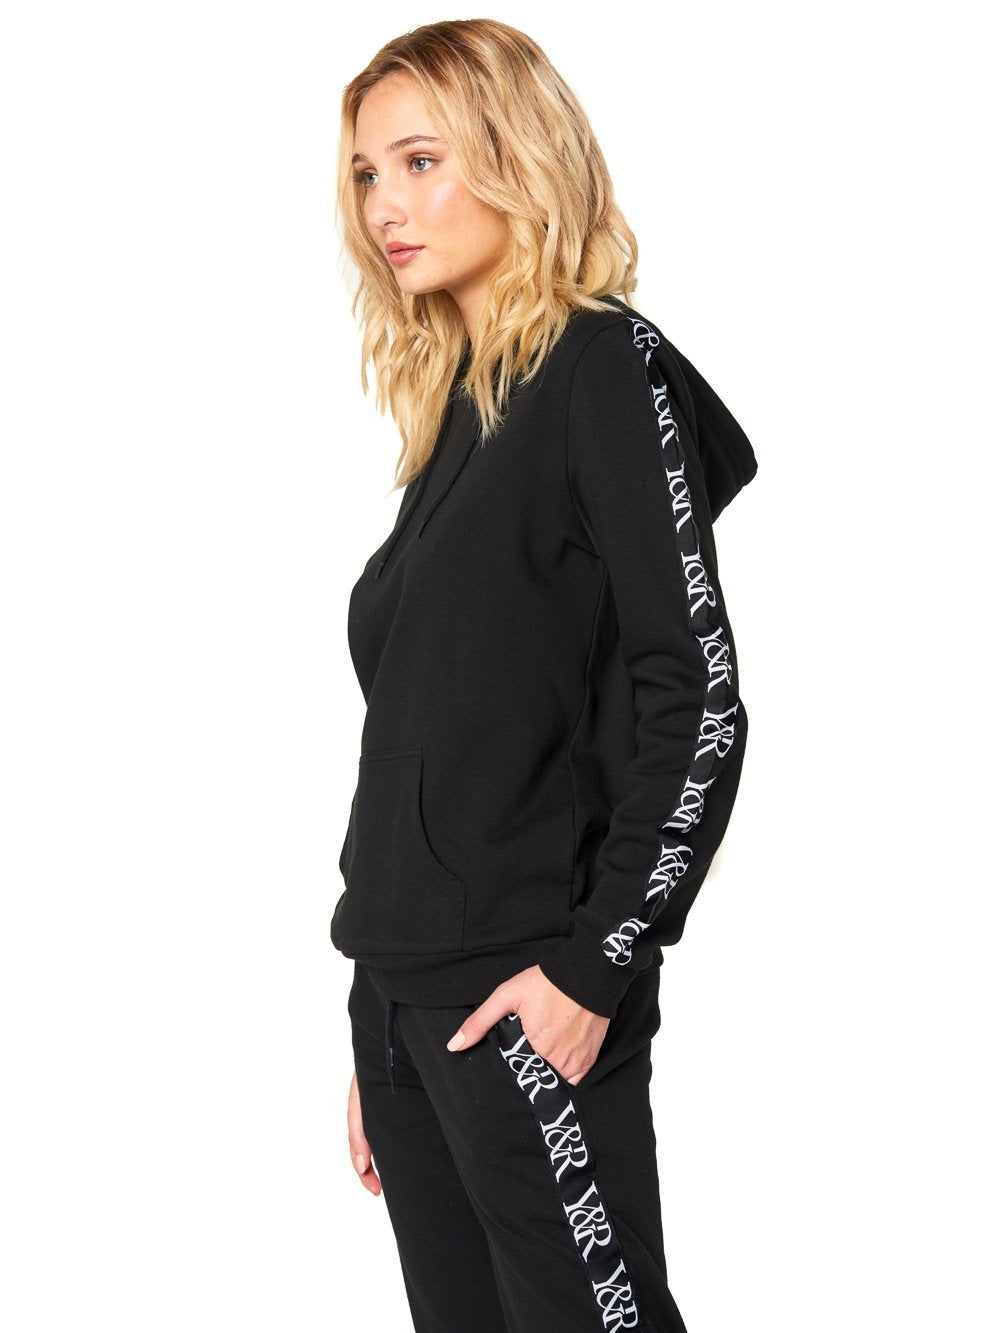 Reckless Girls Womens - Tops - Sweatshirts Kae Hoodie - Black